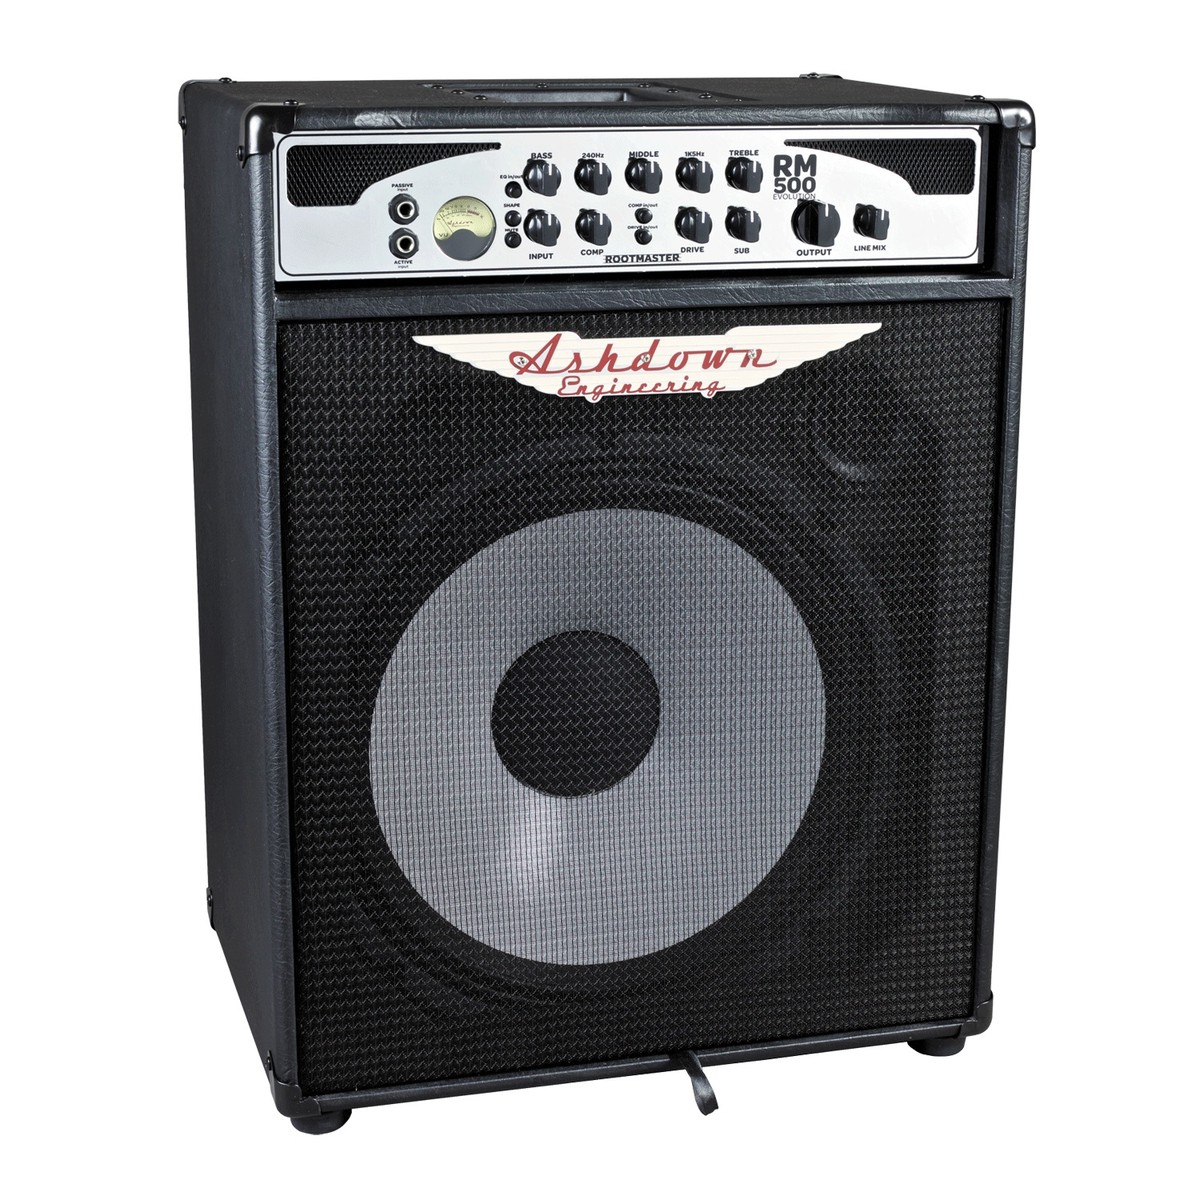 ashdown rm c115t 500 evo lightweight 500w 1 x 15 bass amp combo at. Black Bedroom Furniture Sets. Home Design Ideas